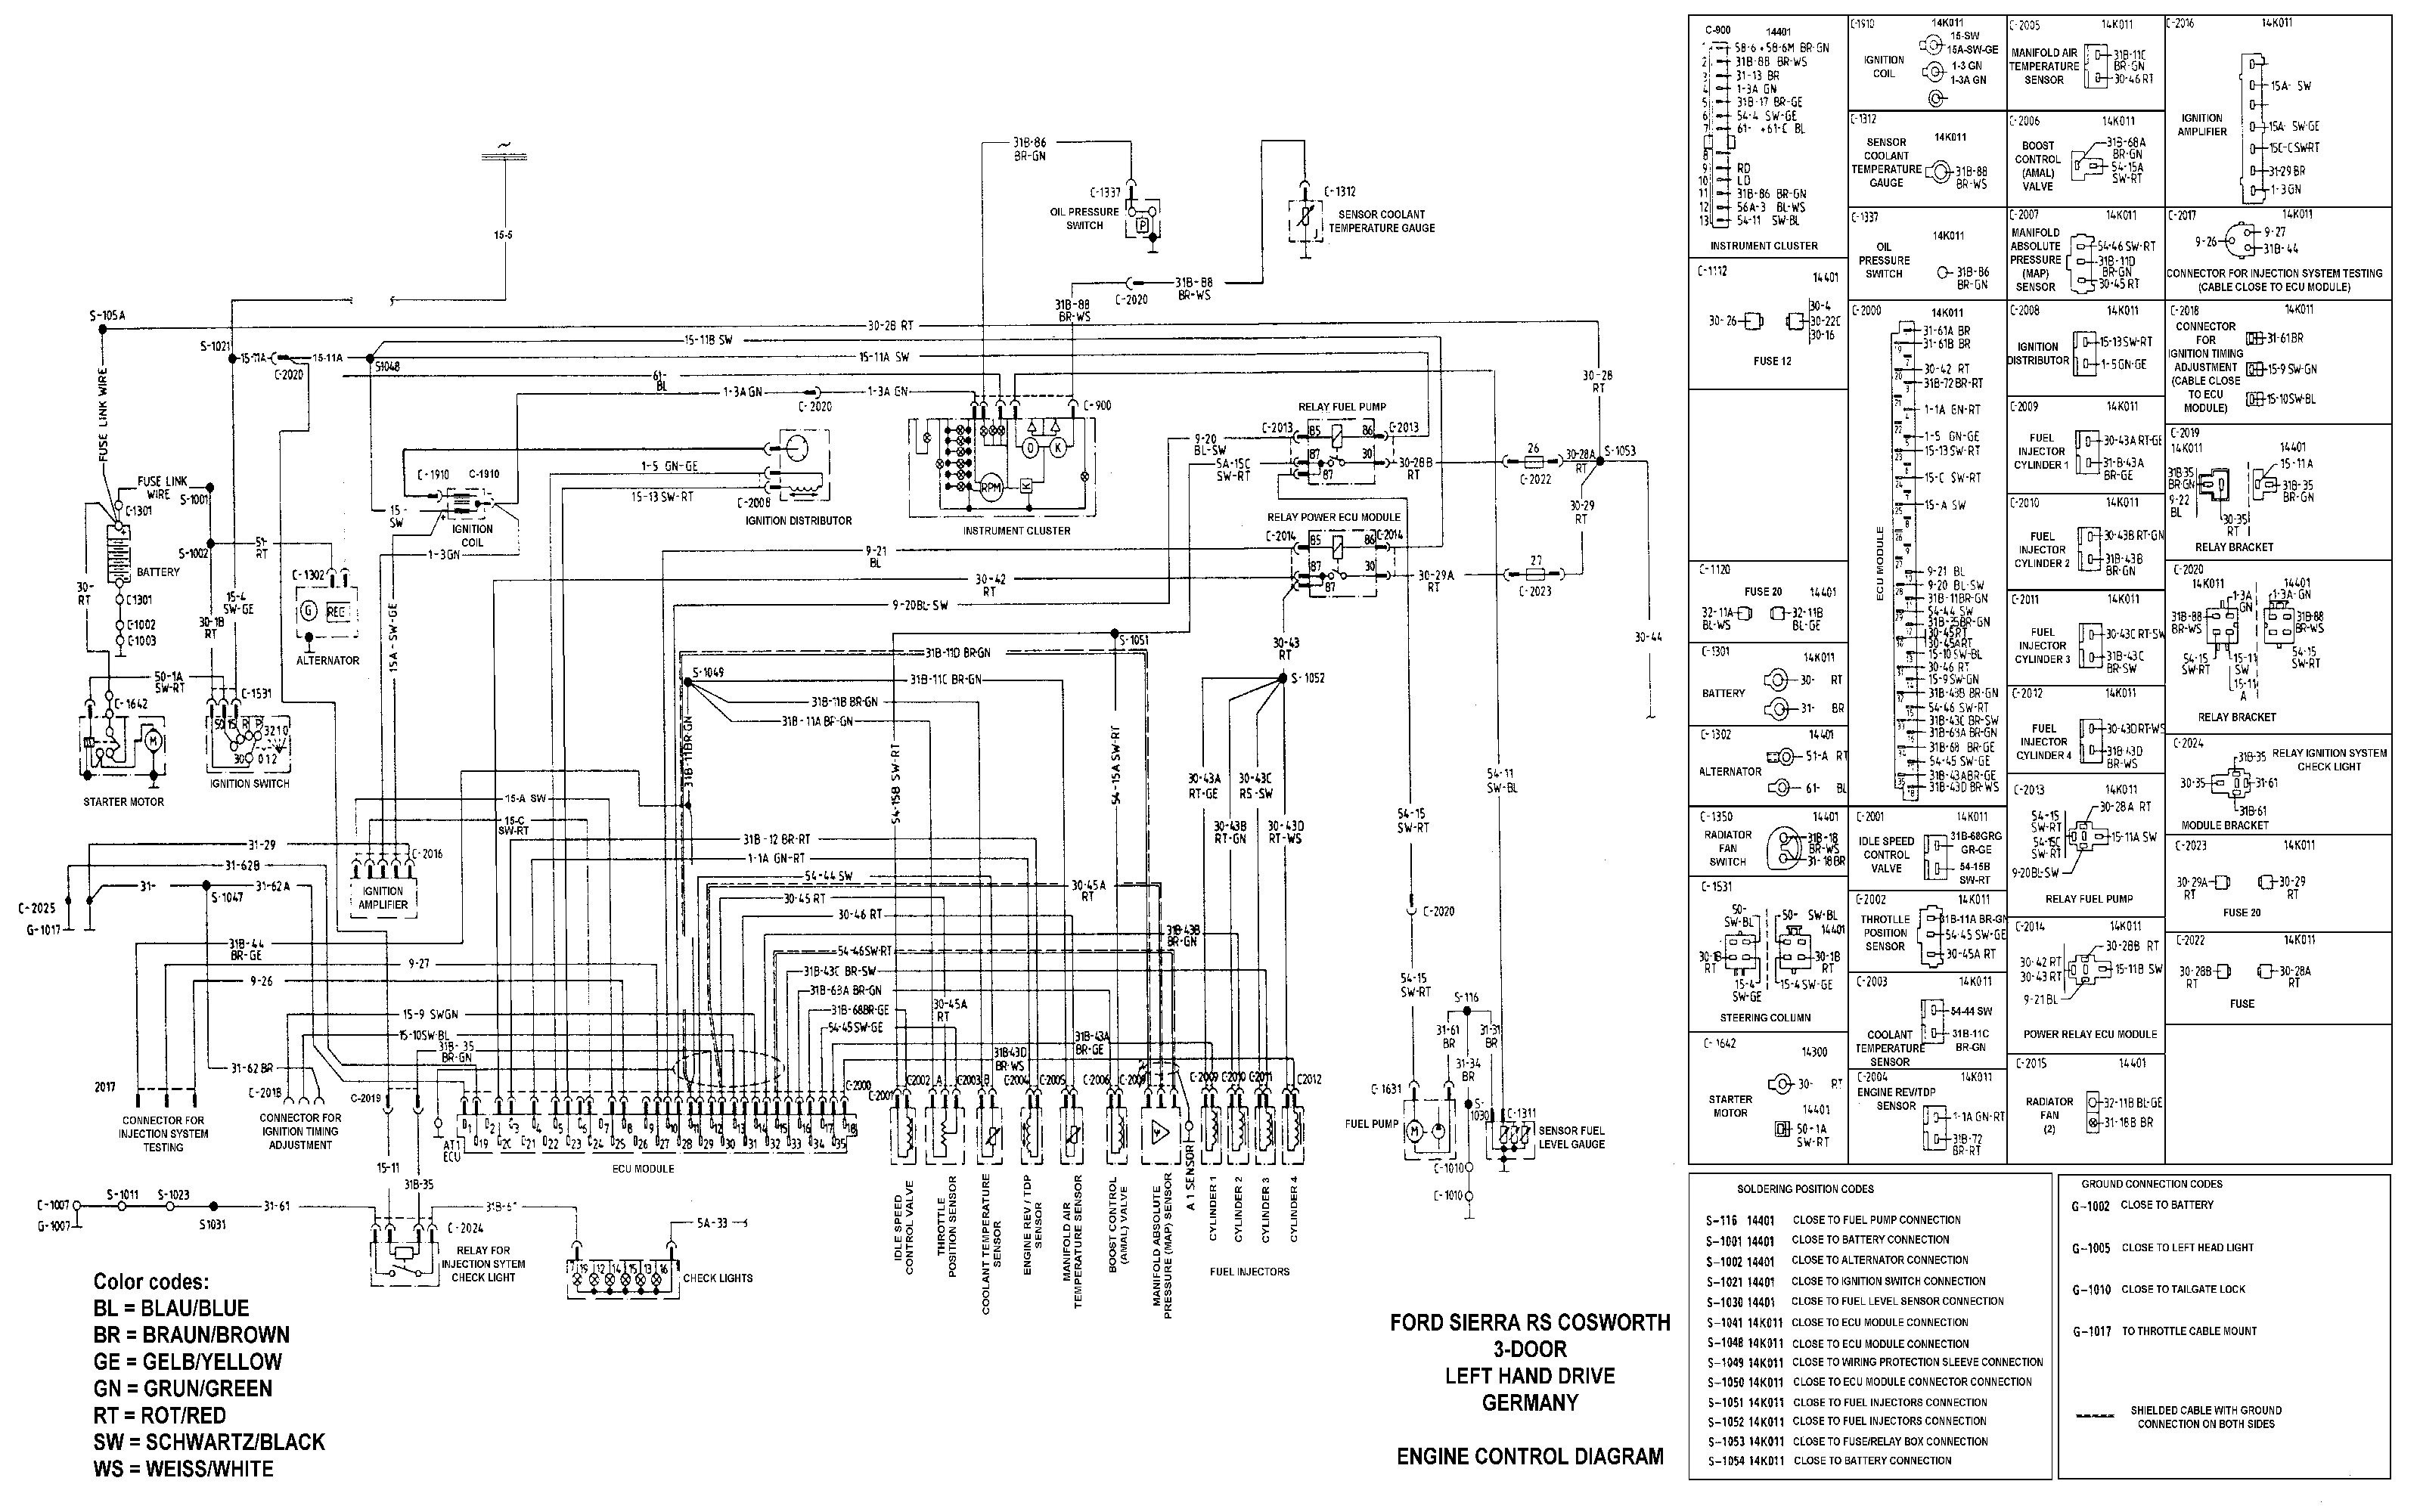 2004-ford-focus-wiring-diagrams